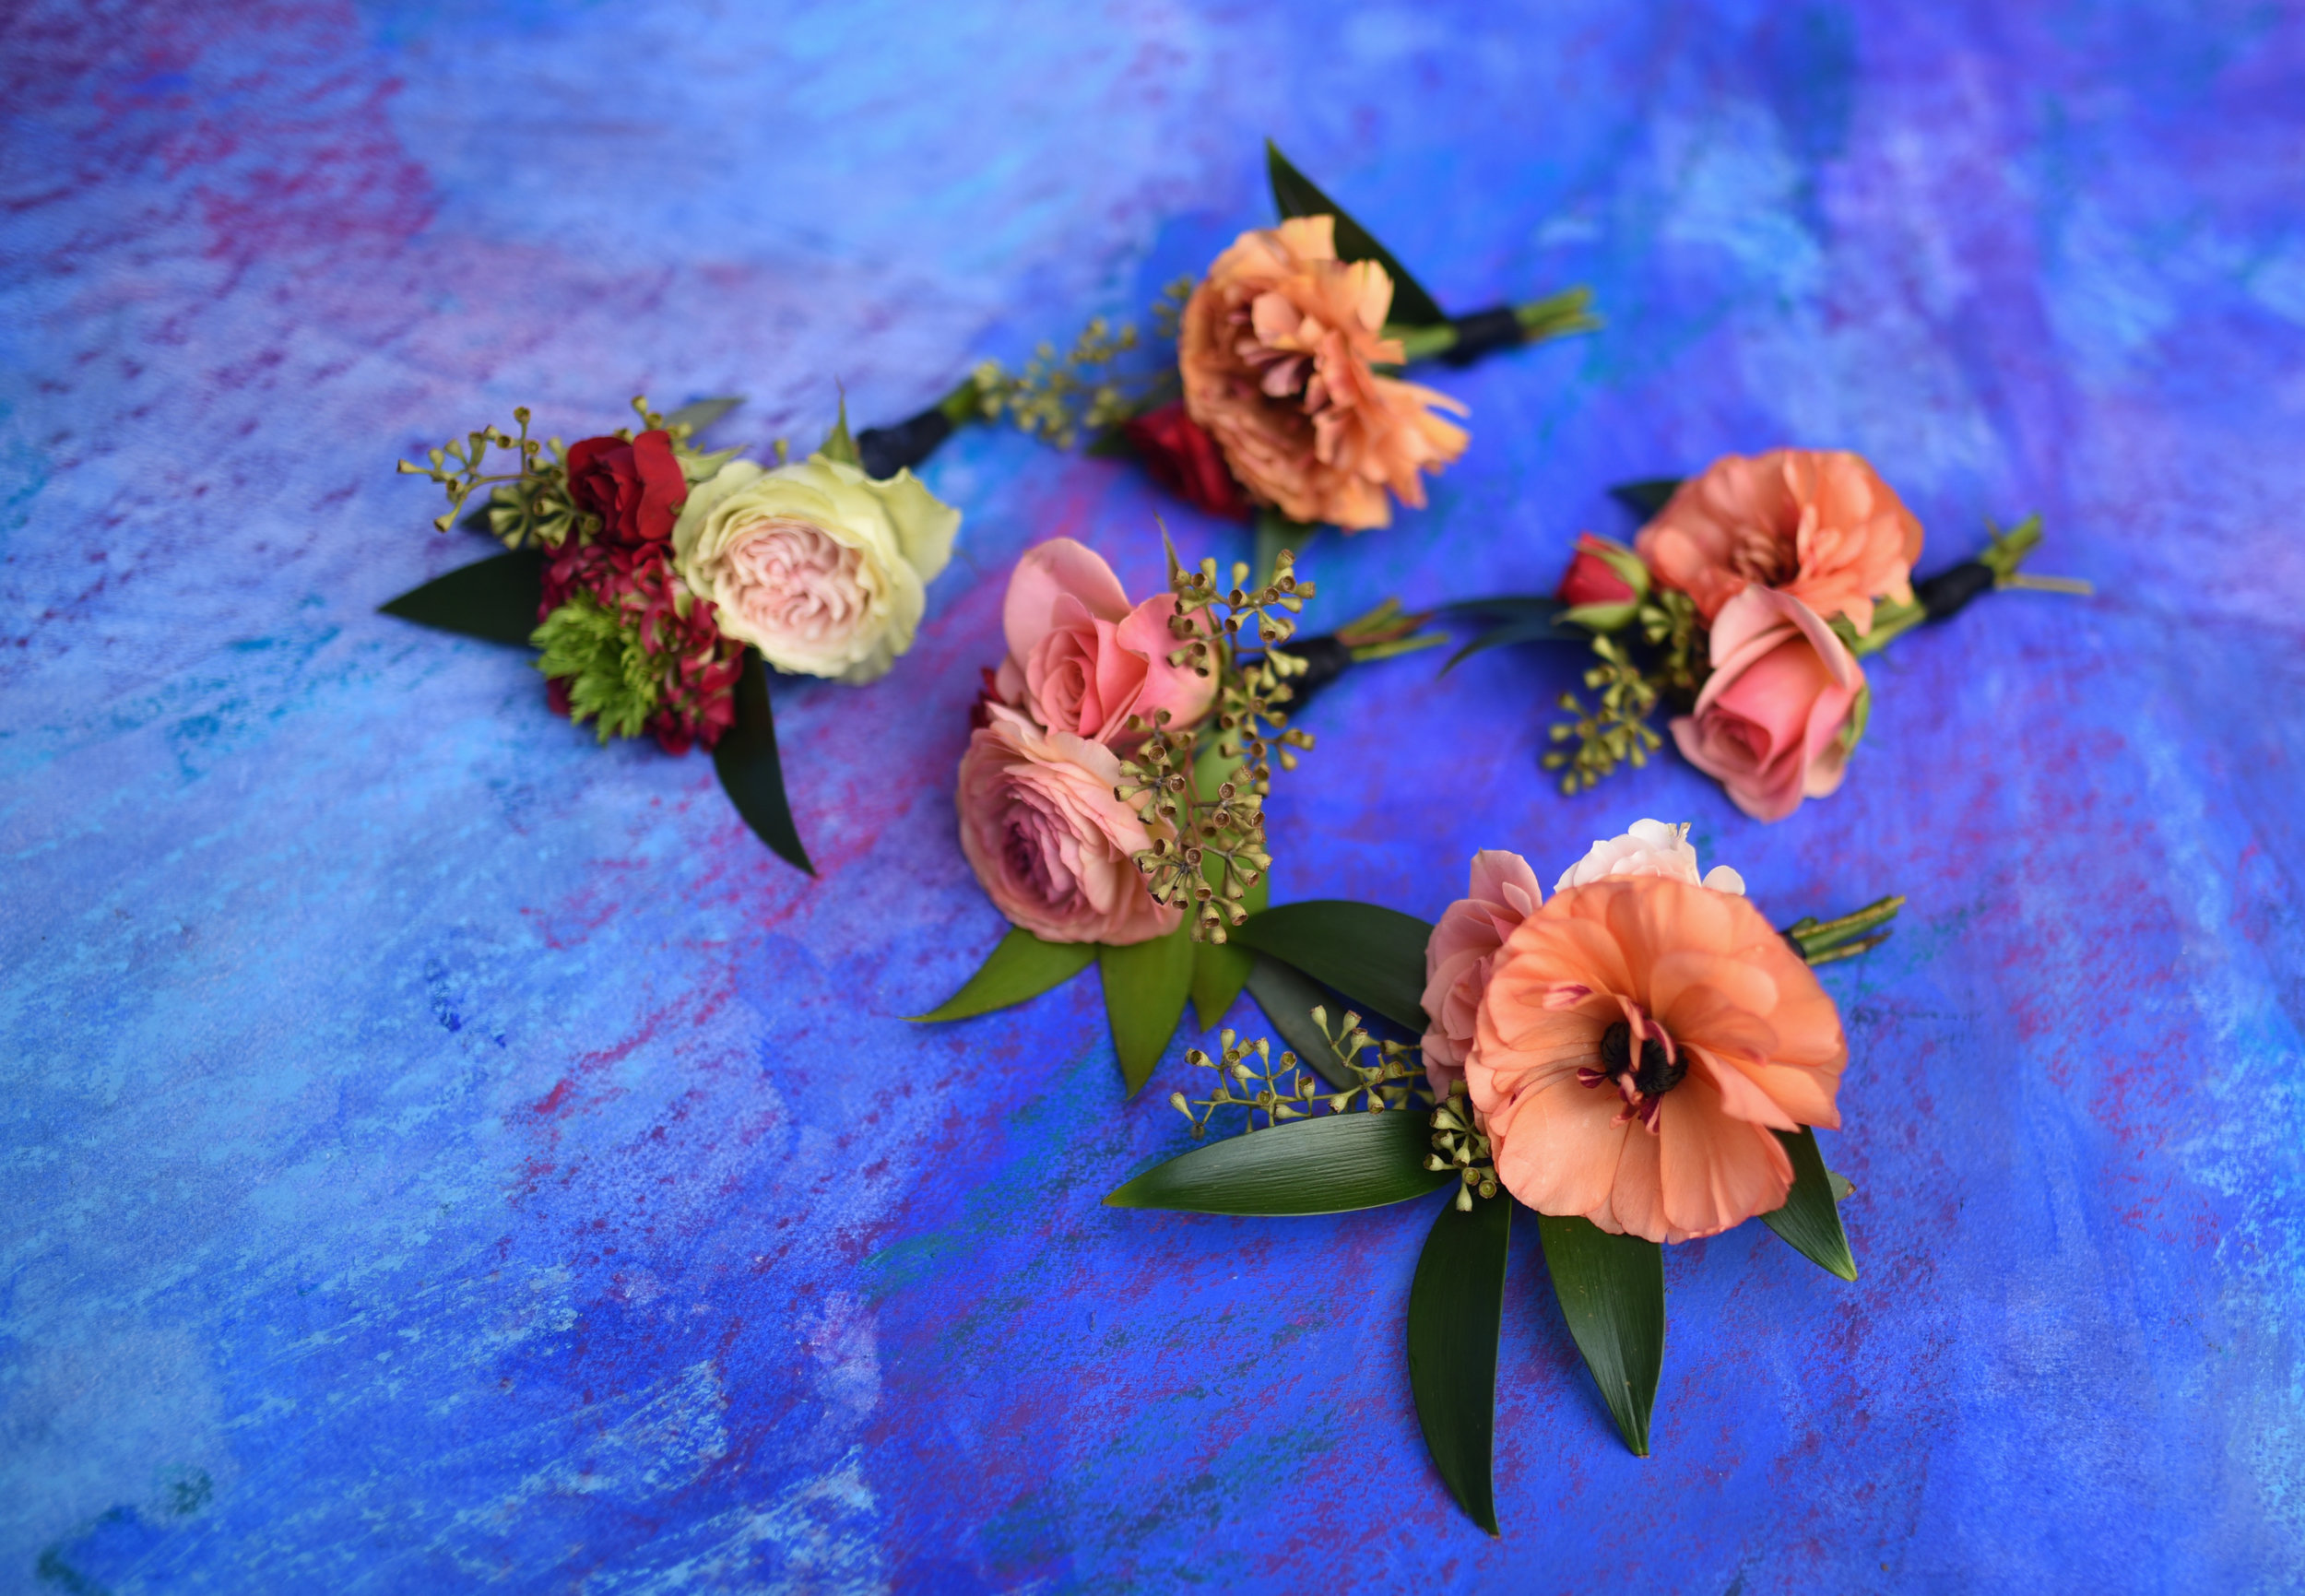 Early Spring Wedding boutonnieres